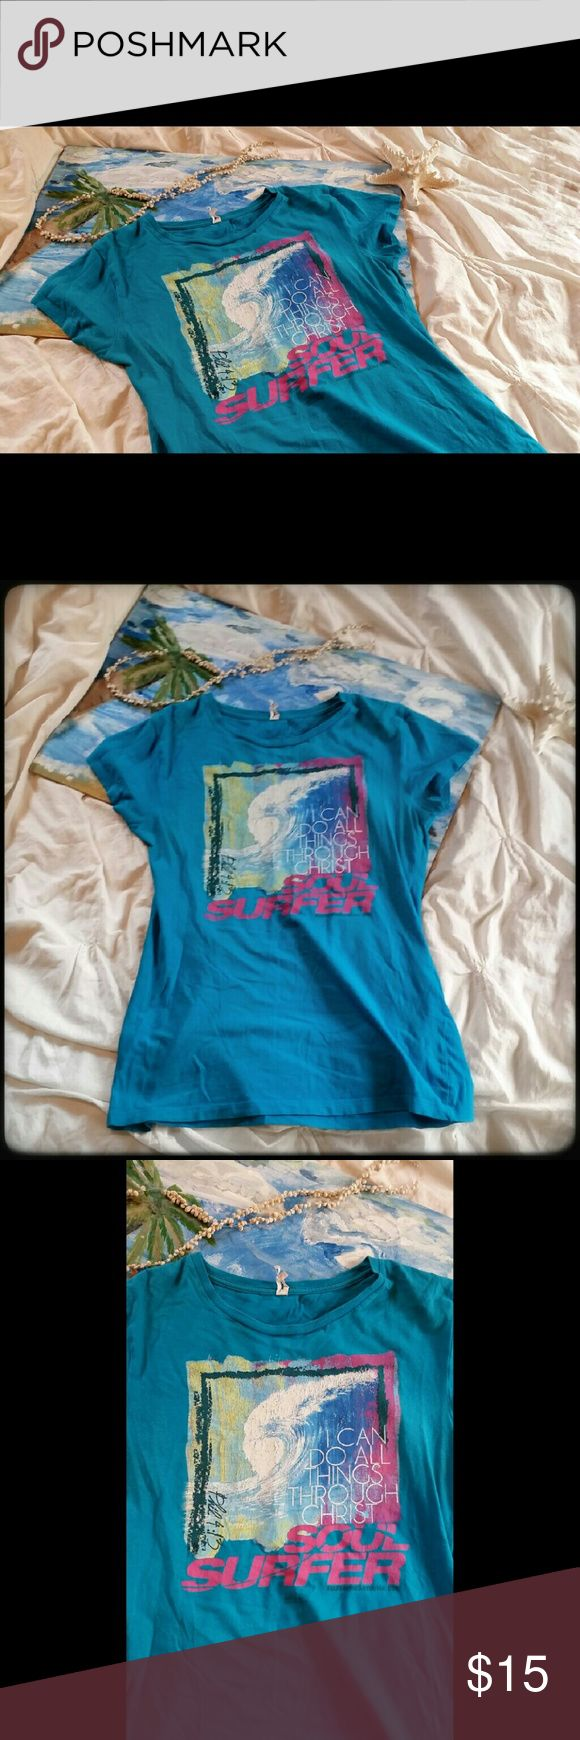 "Soul Surfer T-Shirt Pre-loved dark aqua colored Christian tee shirt with a watercolor style wave and promoting the movie Soul Surfer, inspired by Bethany Hamilton's story. Has Philippians 4:13 """"I can do all things through Christ"""" on it. Minor cracking on iron on design and damaged label tag--otherwise excellent condition.   Additional keywords: ocean beach sea surfing pro surfer biography biographical inspirational inspiring motivational motivating Bible verse scripture quote graphic tee…"